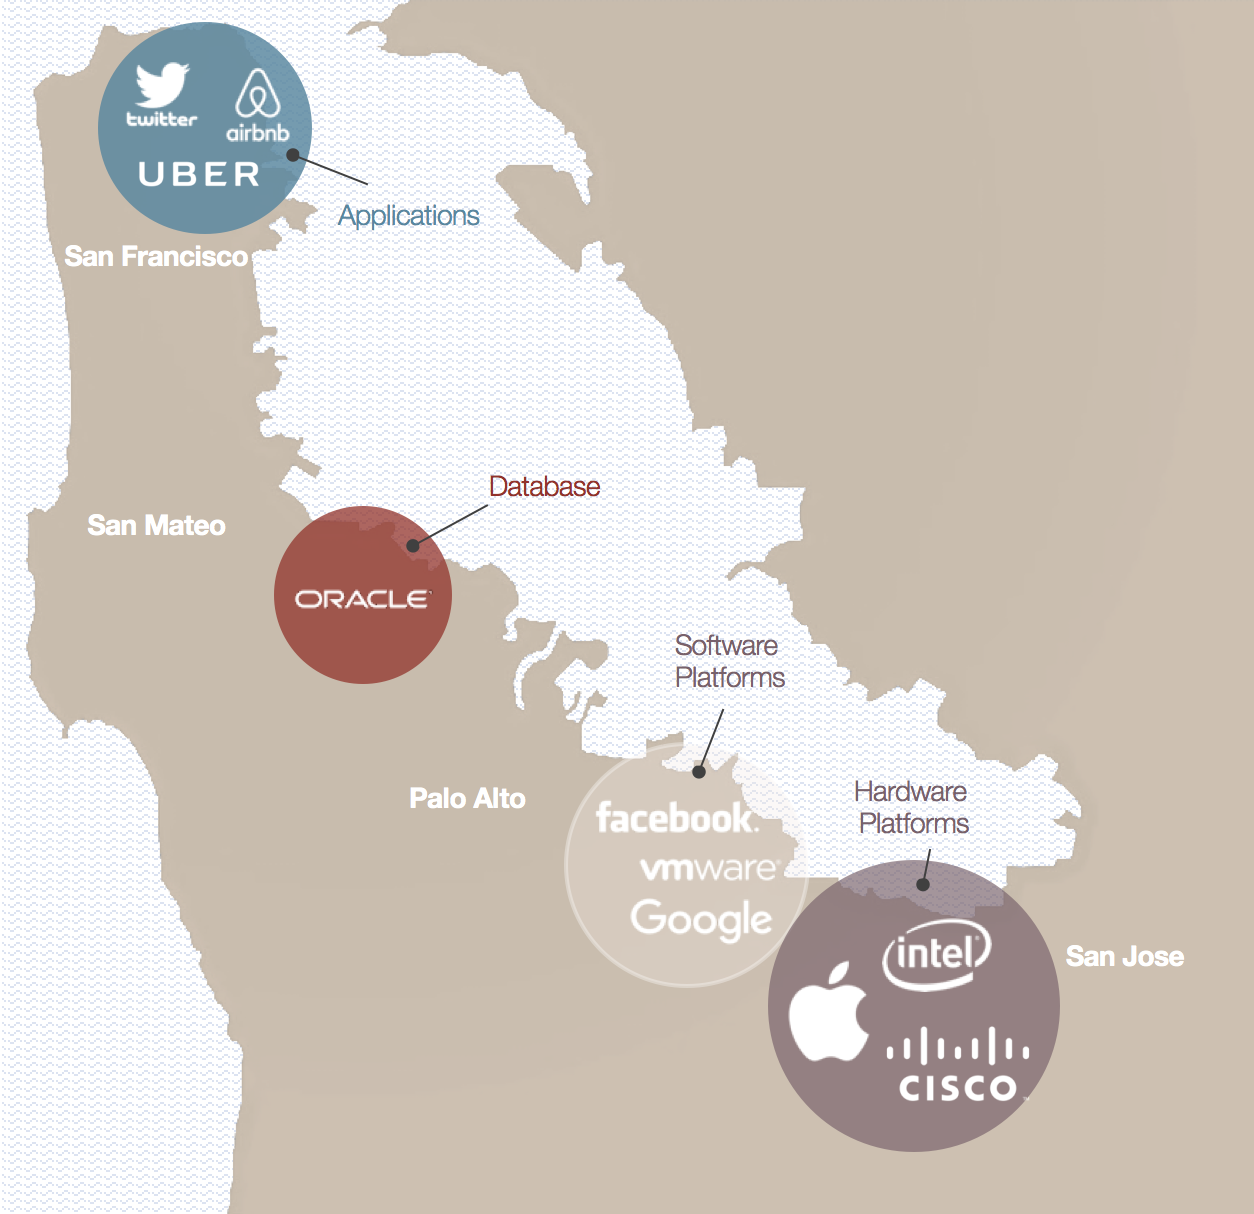 systems map of Silicon Valley